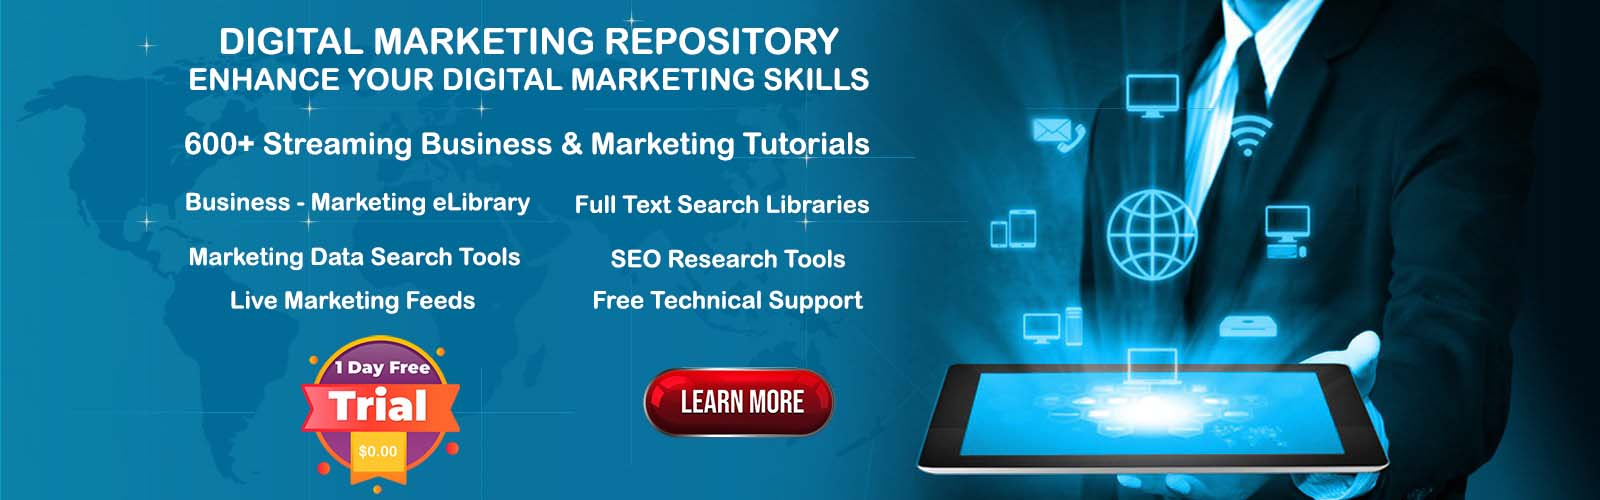 The Digital Marketing Repository - 1 Month Training - Improve Your SEO and Marketing Skills